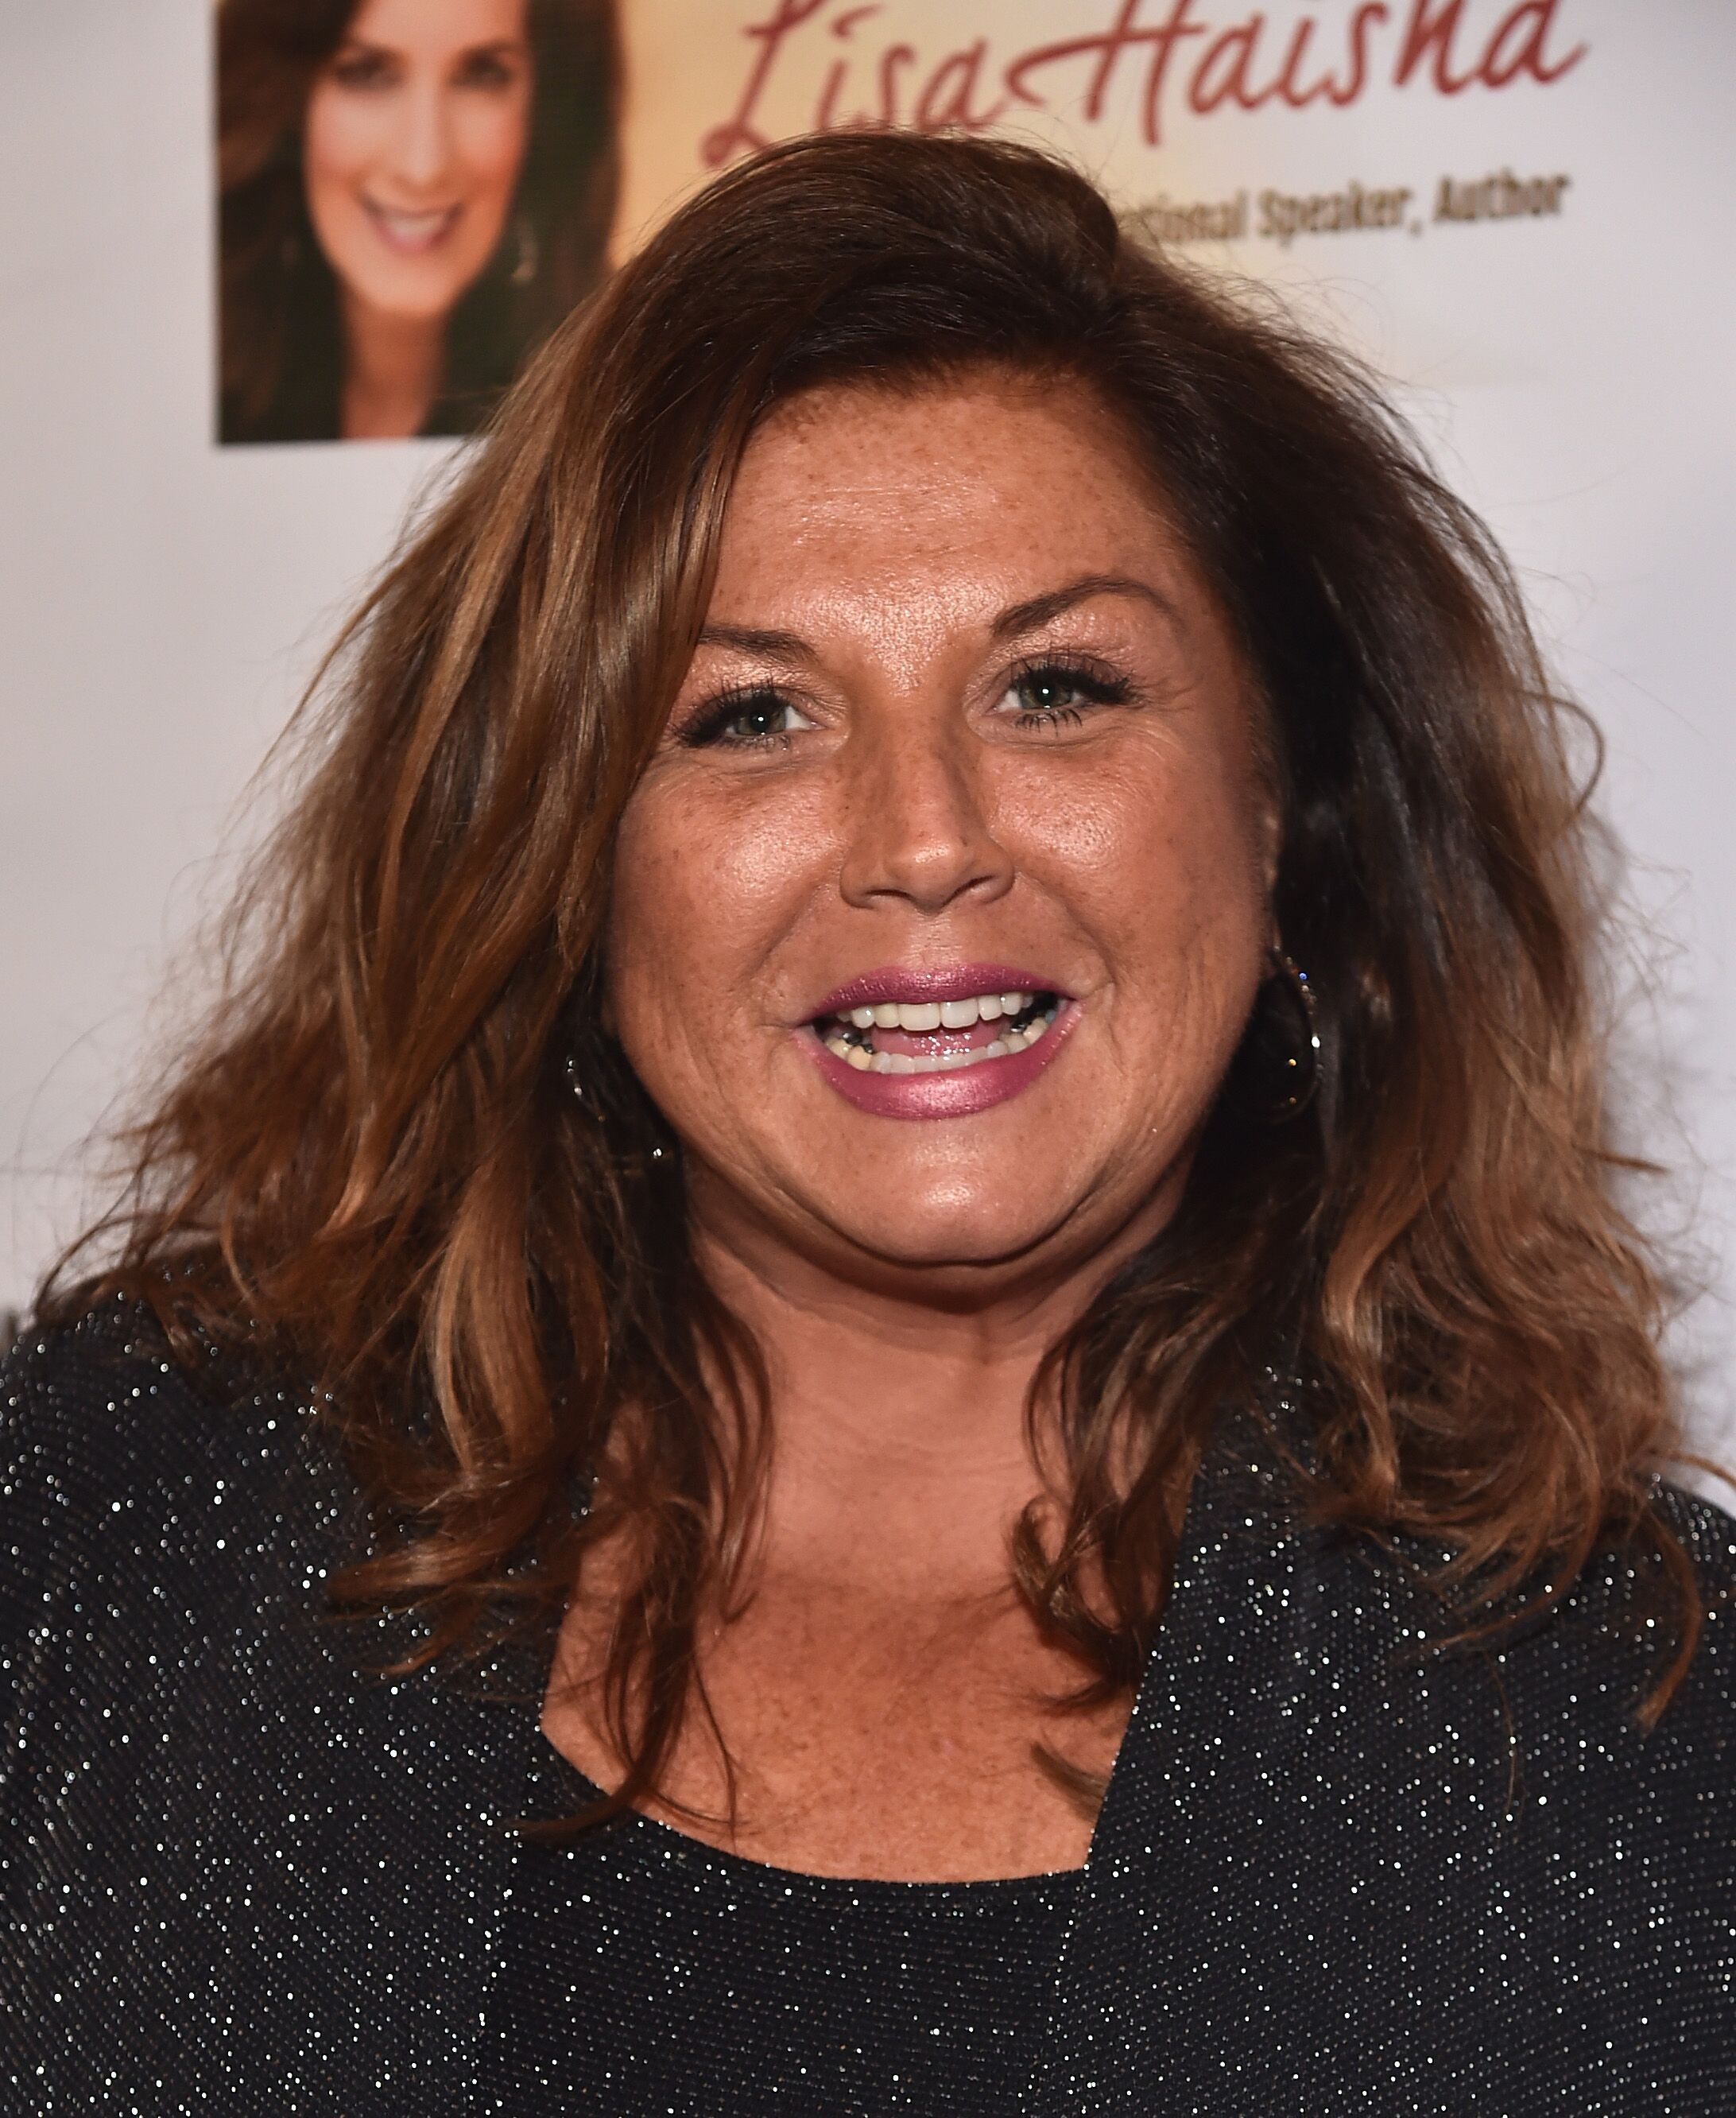 Abby Lee Miller at the 3rd Annual Whispers From Children's Heats Foundation Legacy Charity Gala on March 24, 2017, in Santa Monica, California   Photo: Alberto E. Rodriguez/Getty Images